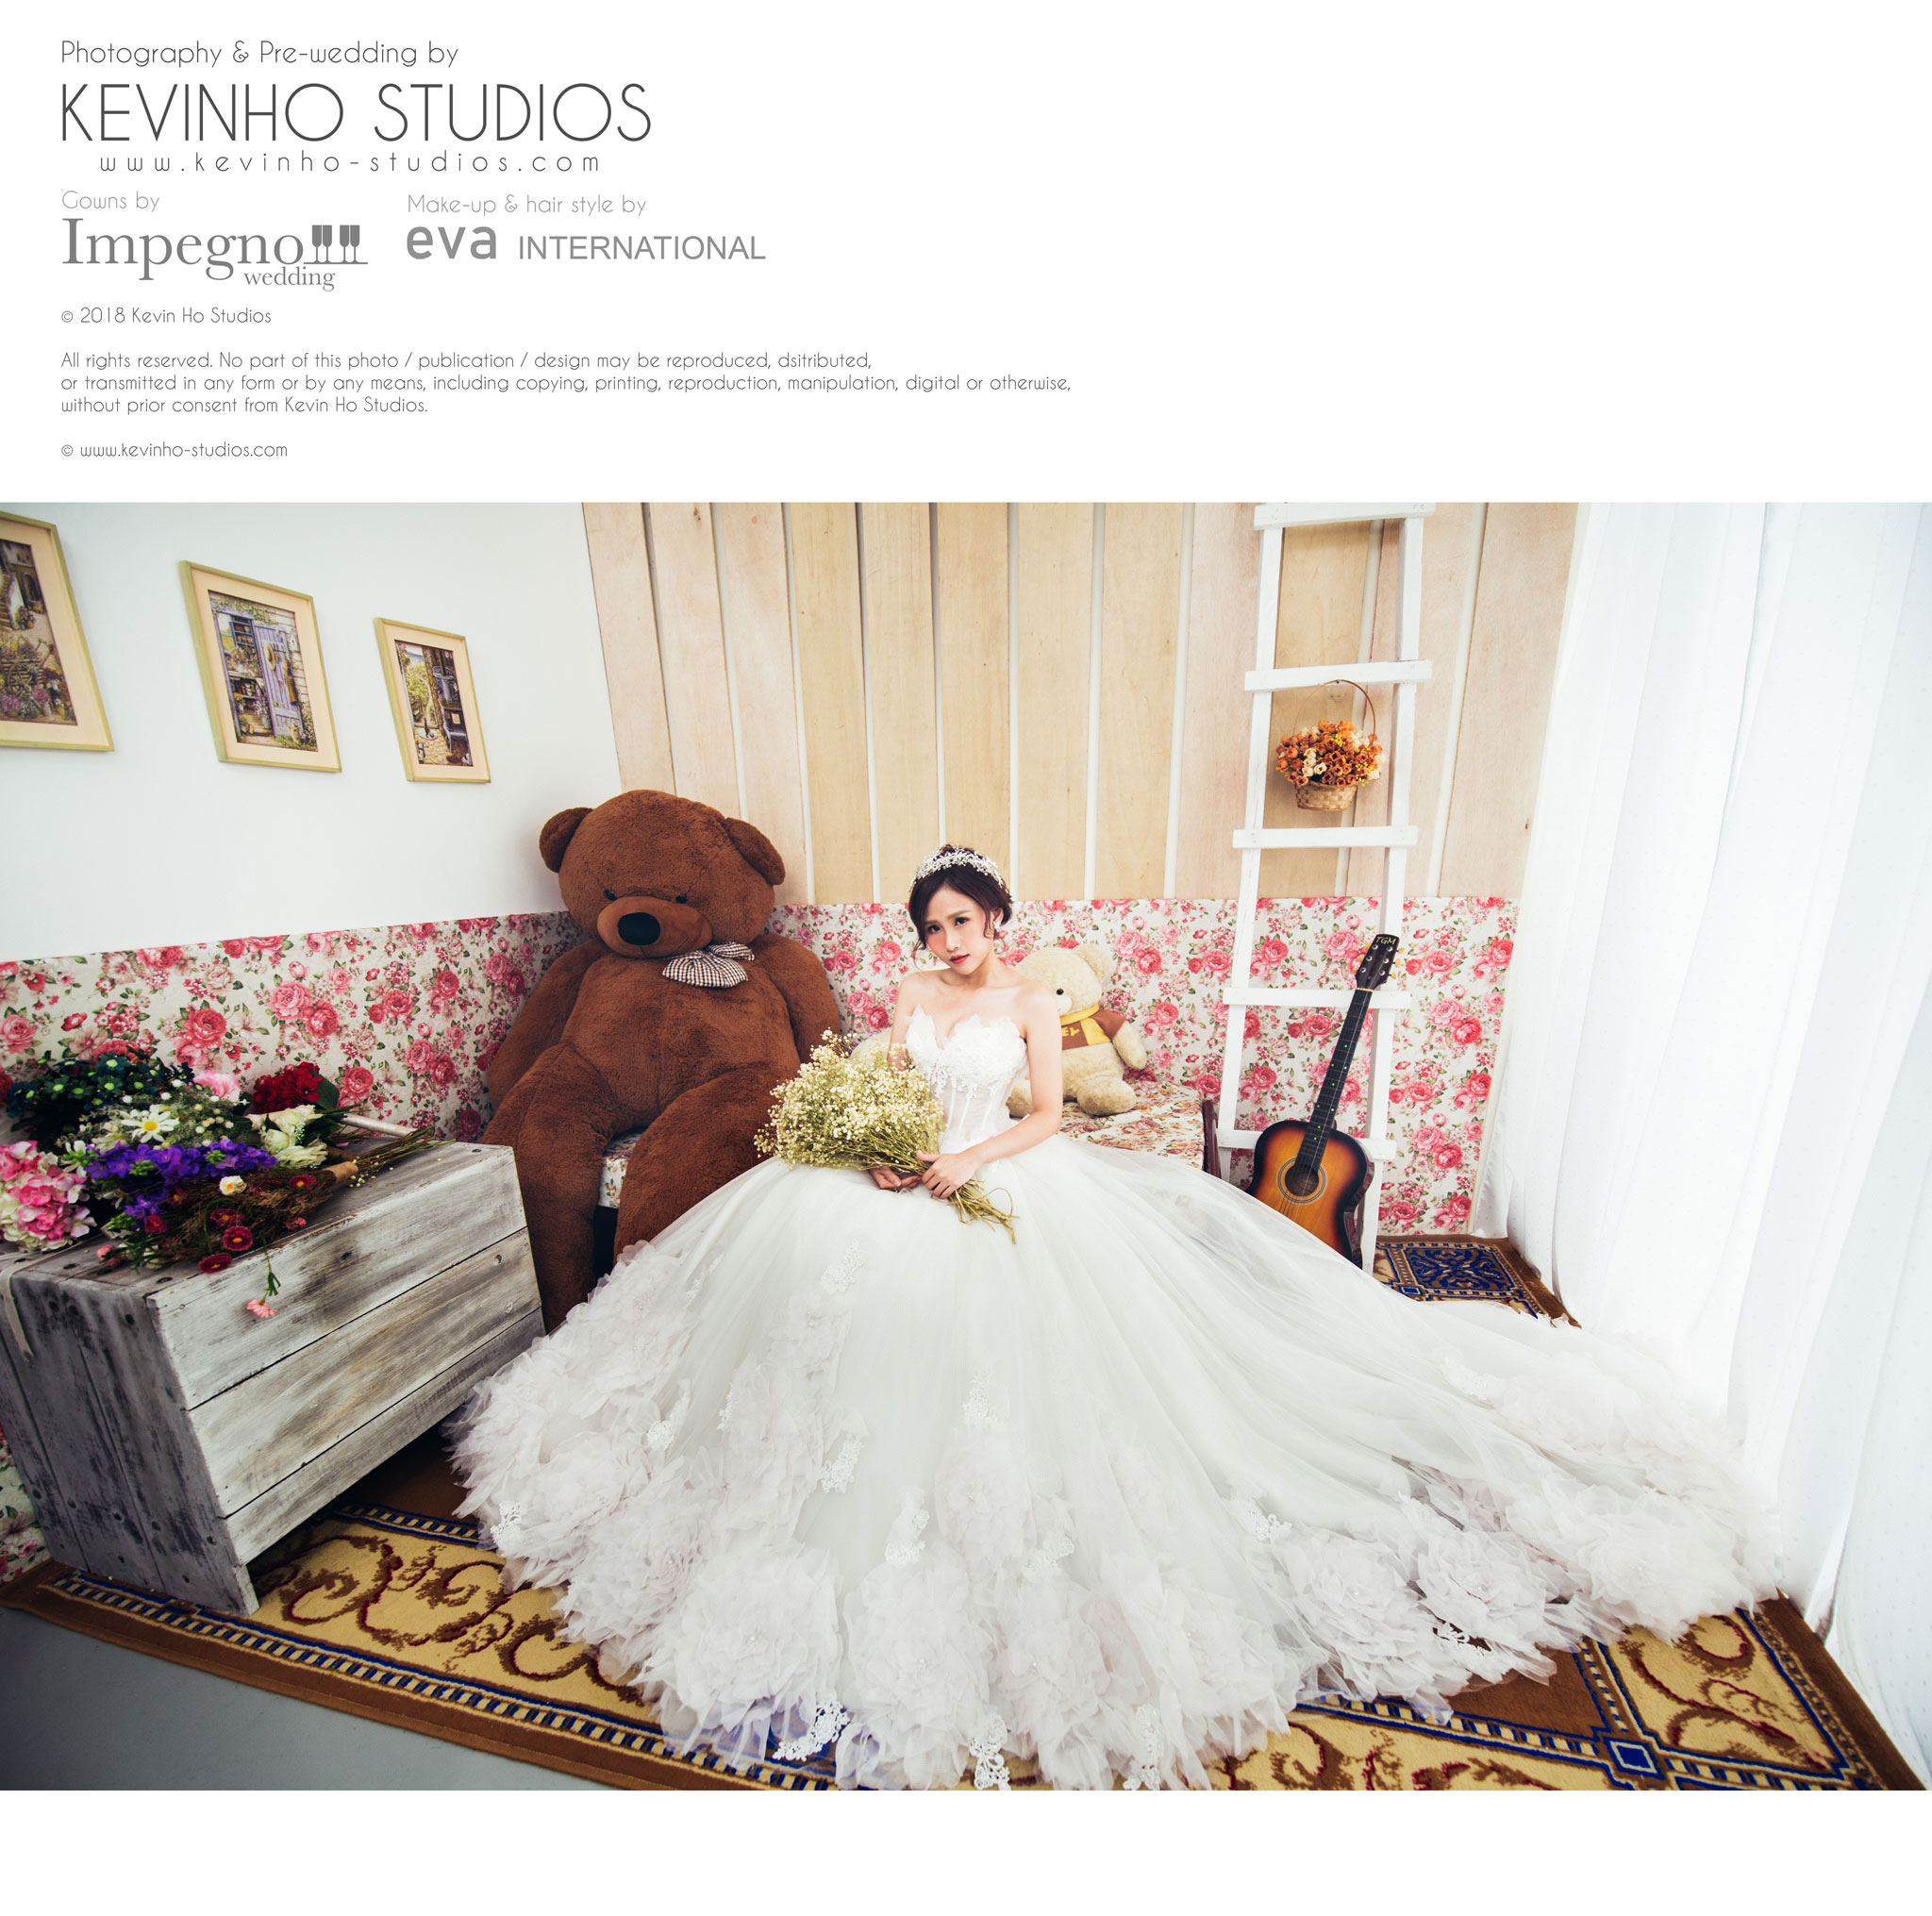 Rynnie, looking stunningly beautiful in this long trail pre-wedding white gown by Impegno Wedding.